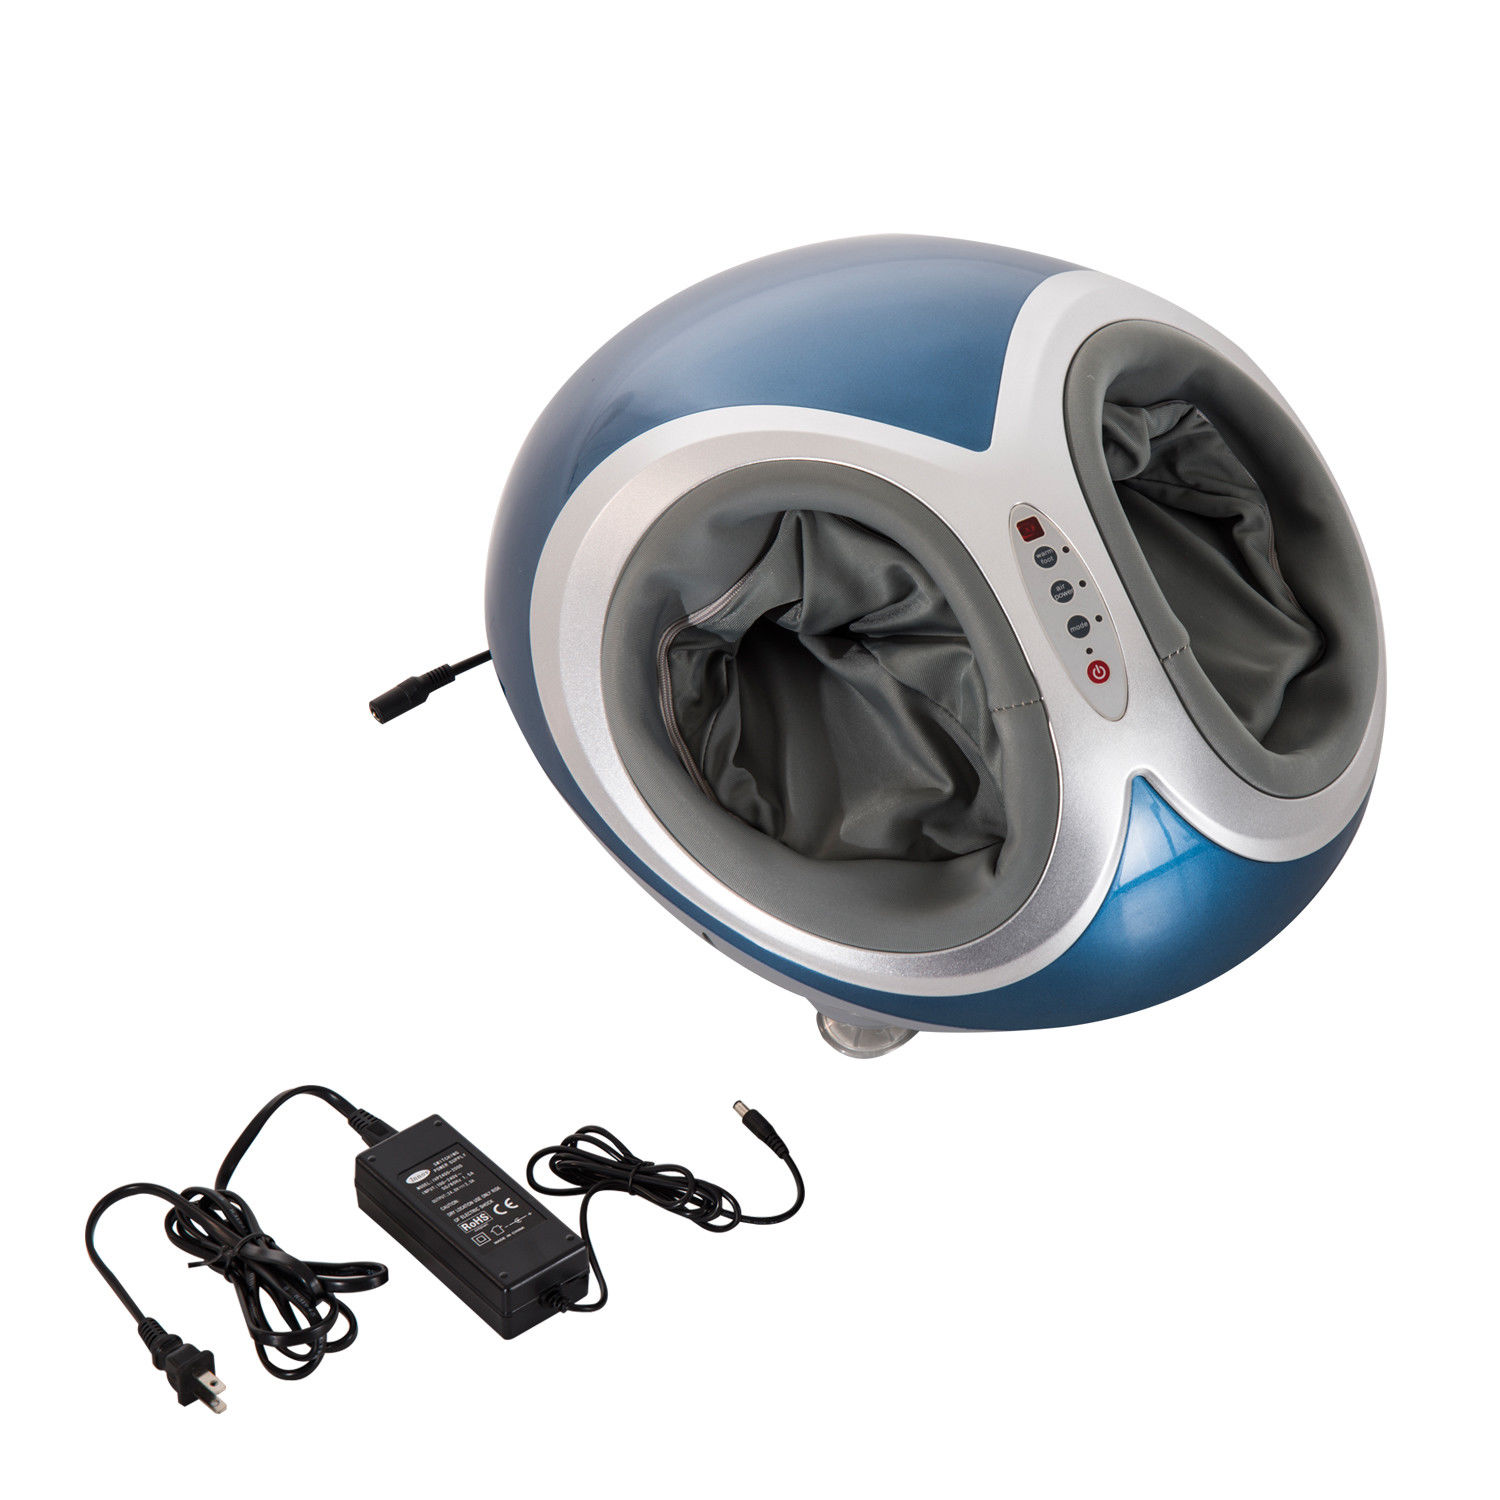 HOMCOM Personal Heated Multi Function Dual Foot Massager With Remote Control - Blue